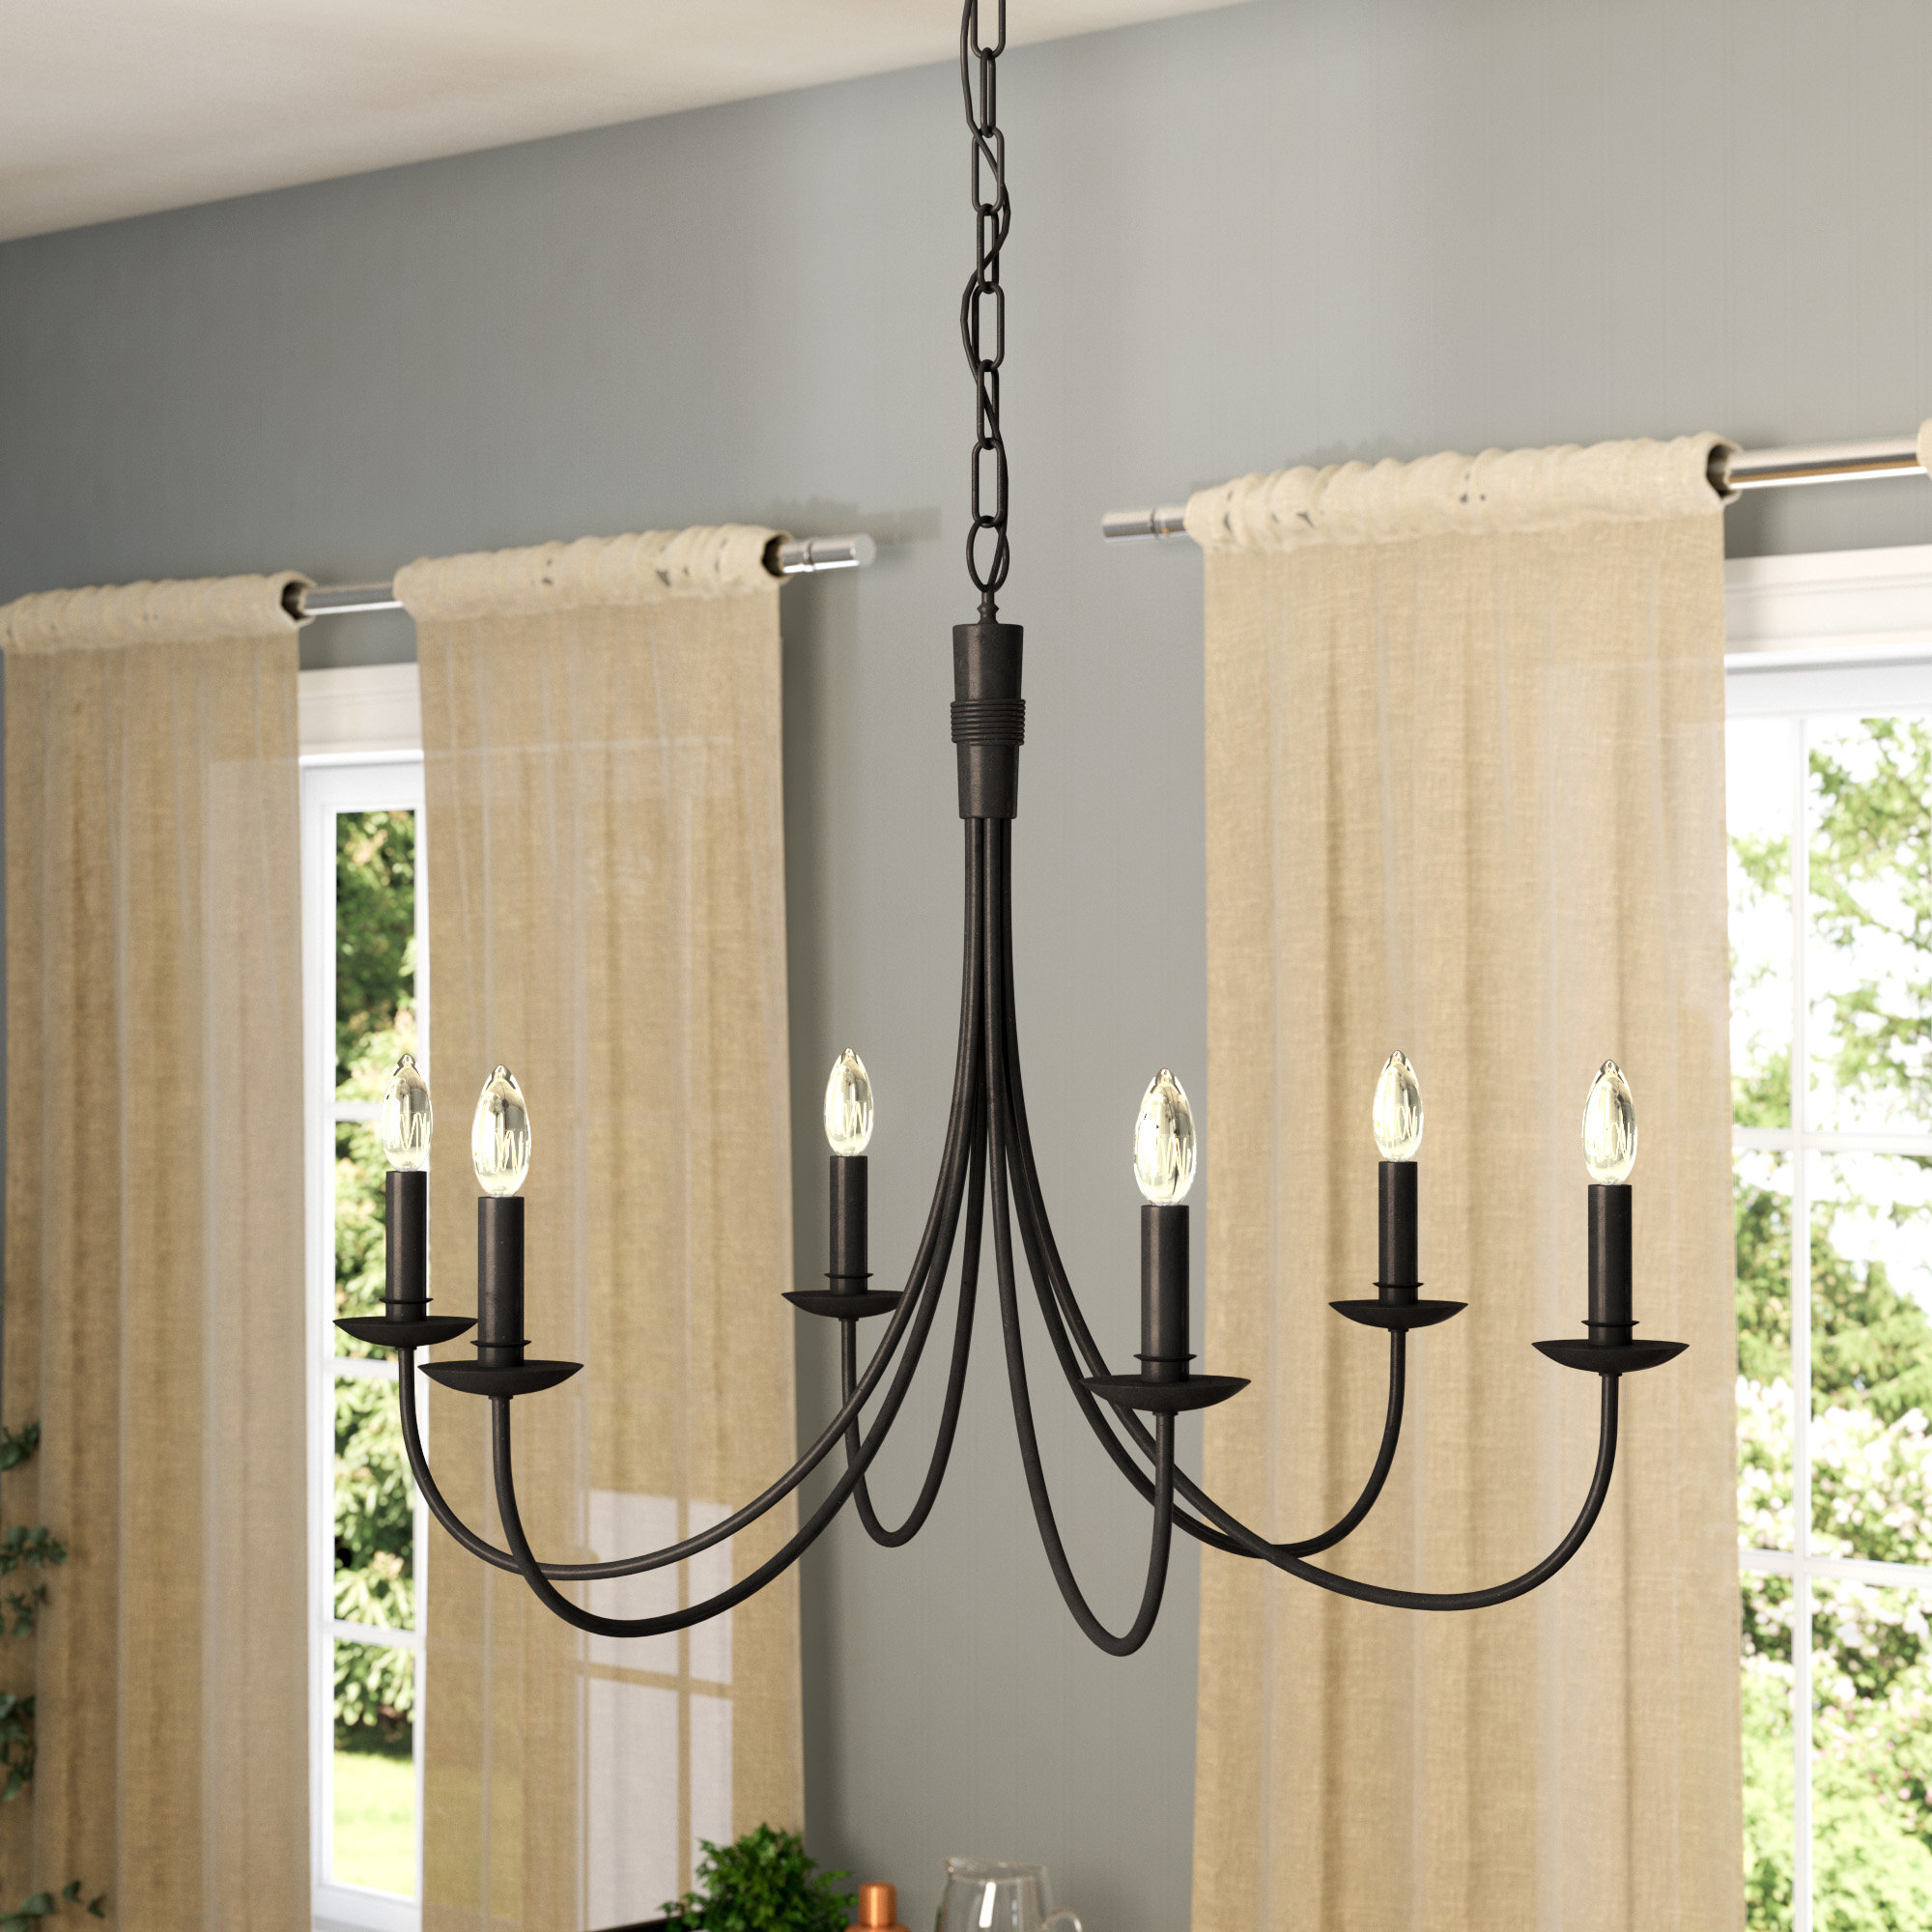 Souders 6 Light Candle Style Chandelier Throughout Hamza 6 Light Candle Style Chandeliers (View 4 of 30)